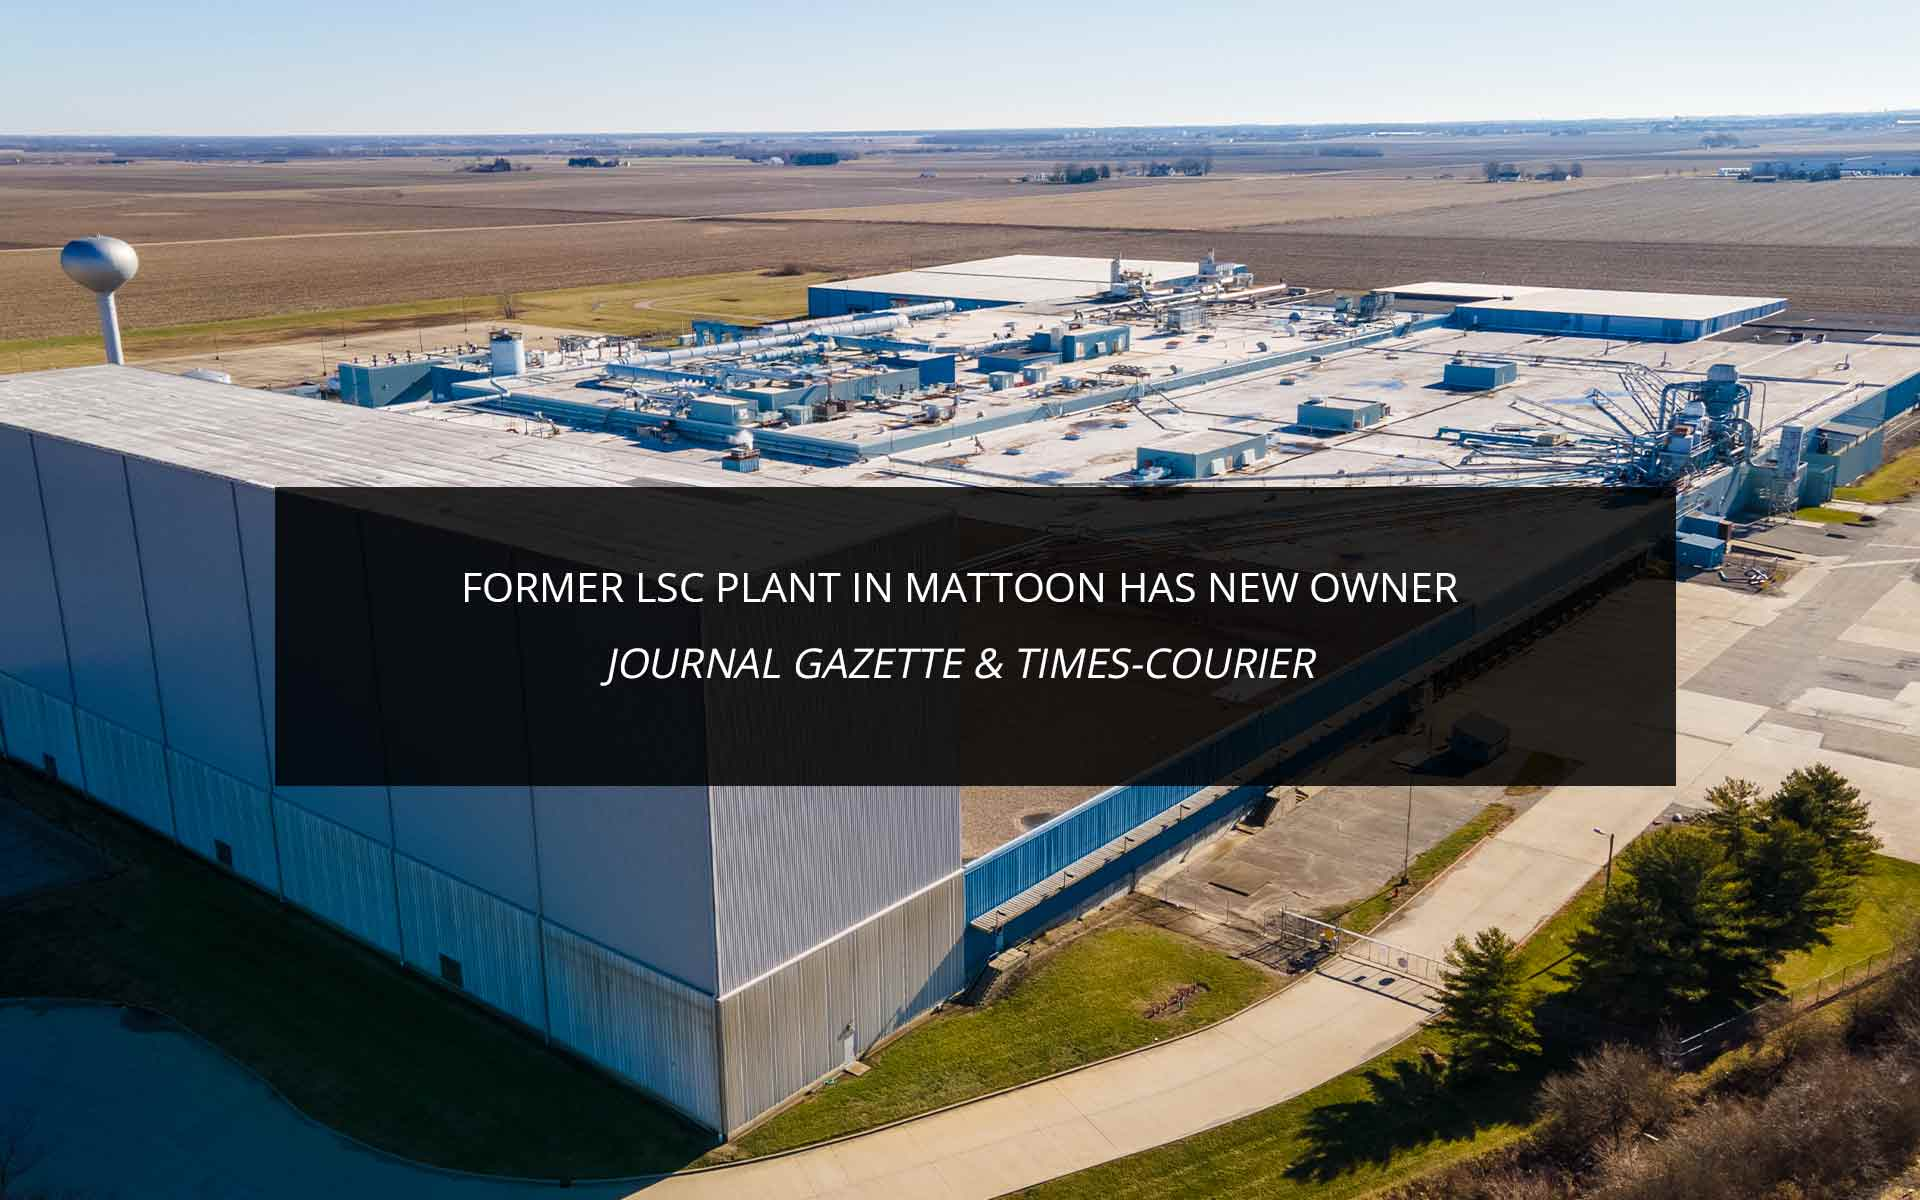 Former LSC plant in Mattoon has new owner